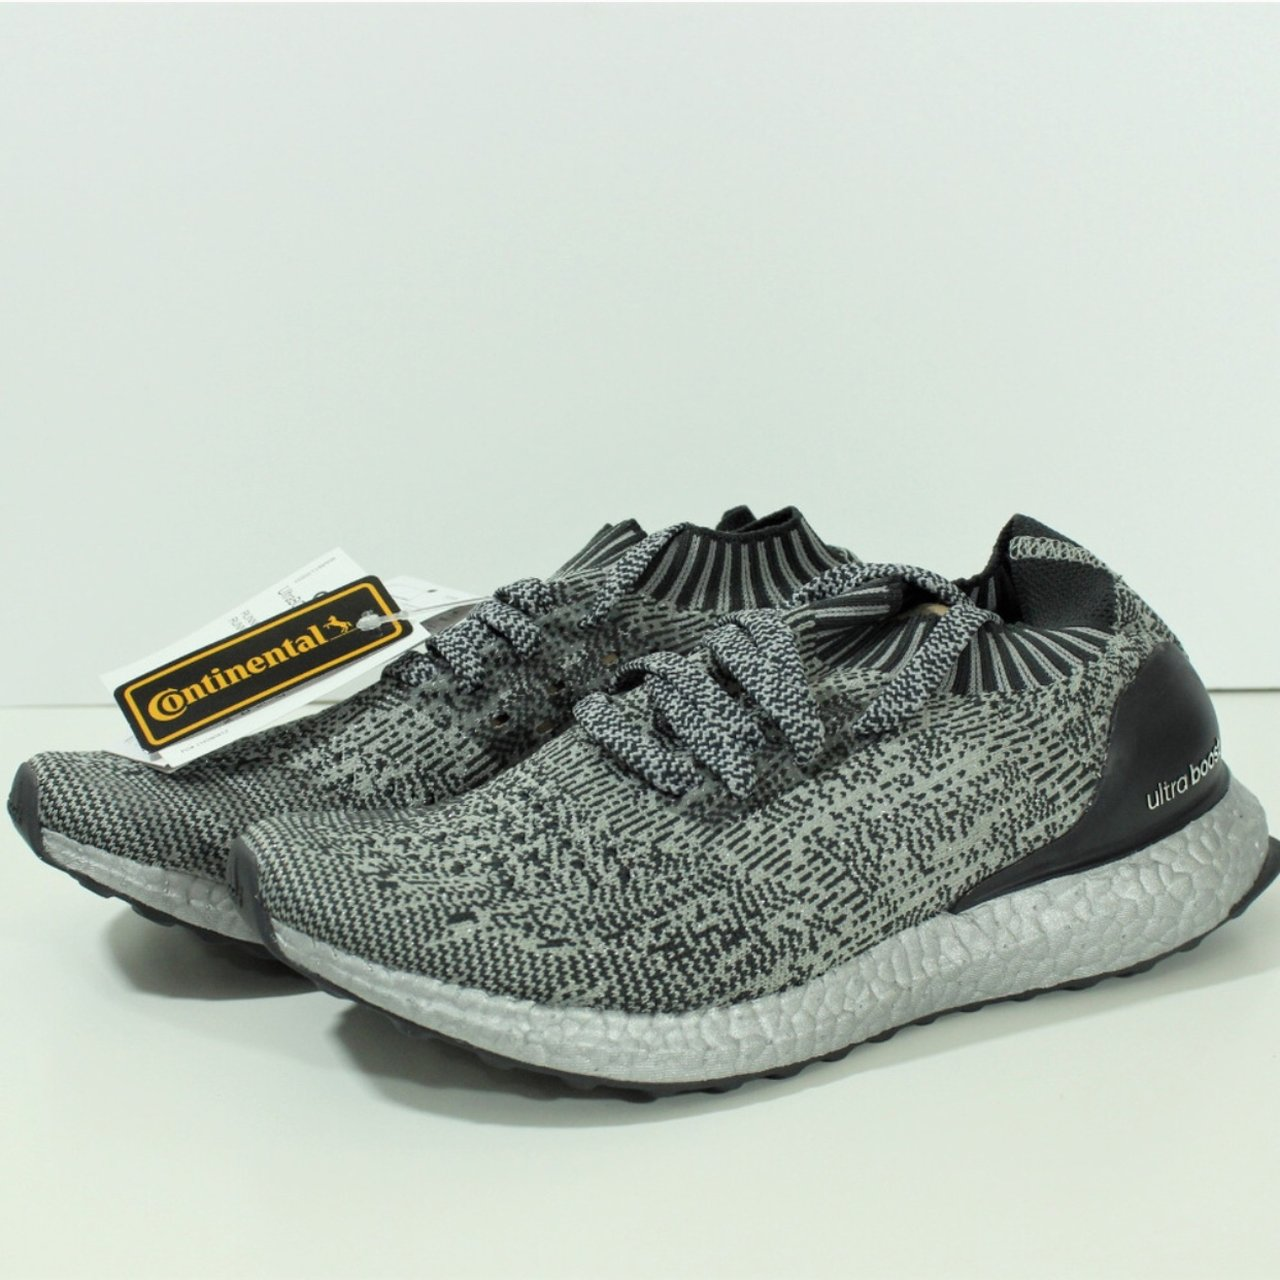 100% Authentic Adidas Ultra Boost Uncaged Silver Pack BA7997 - Depop a3d55b6eb